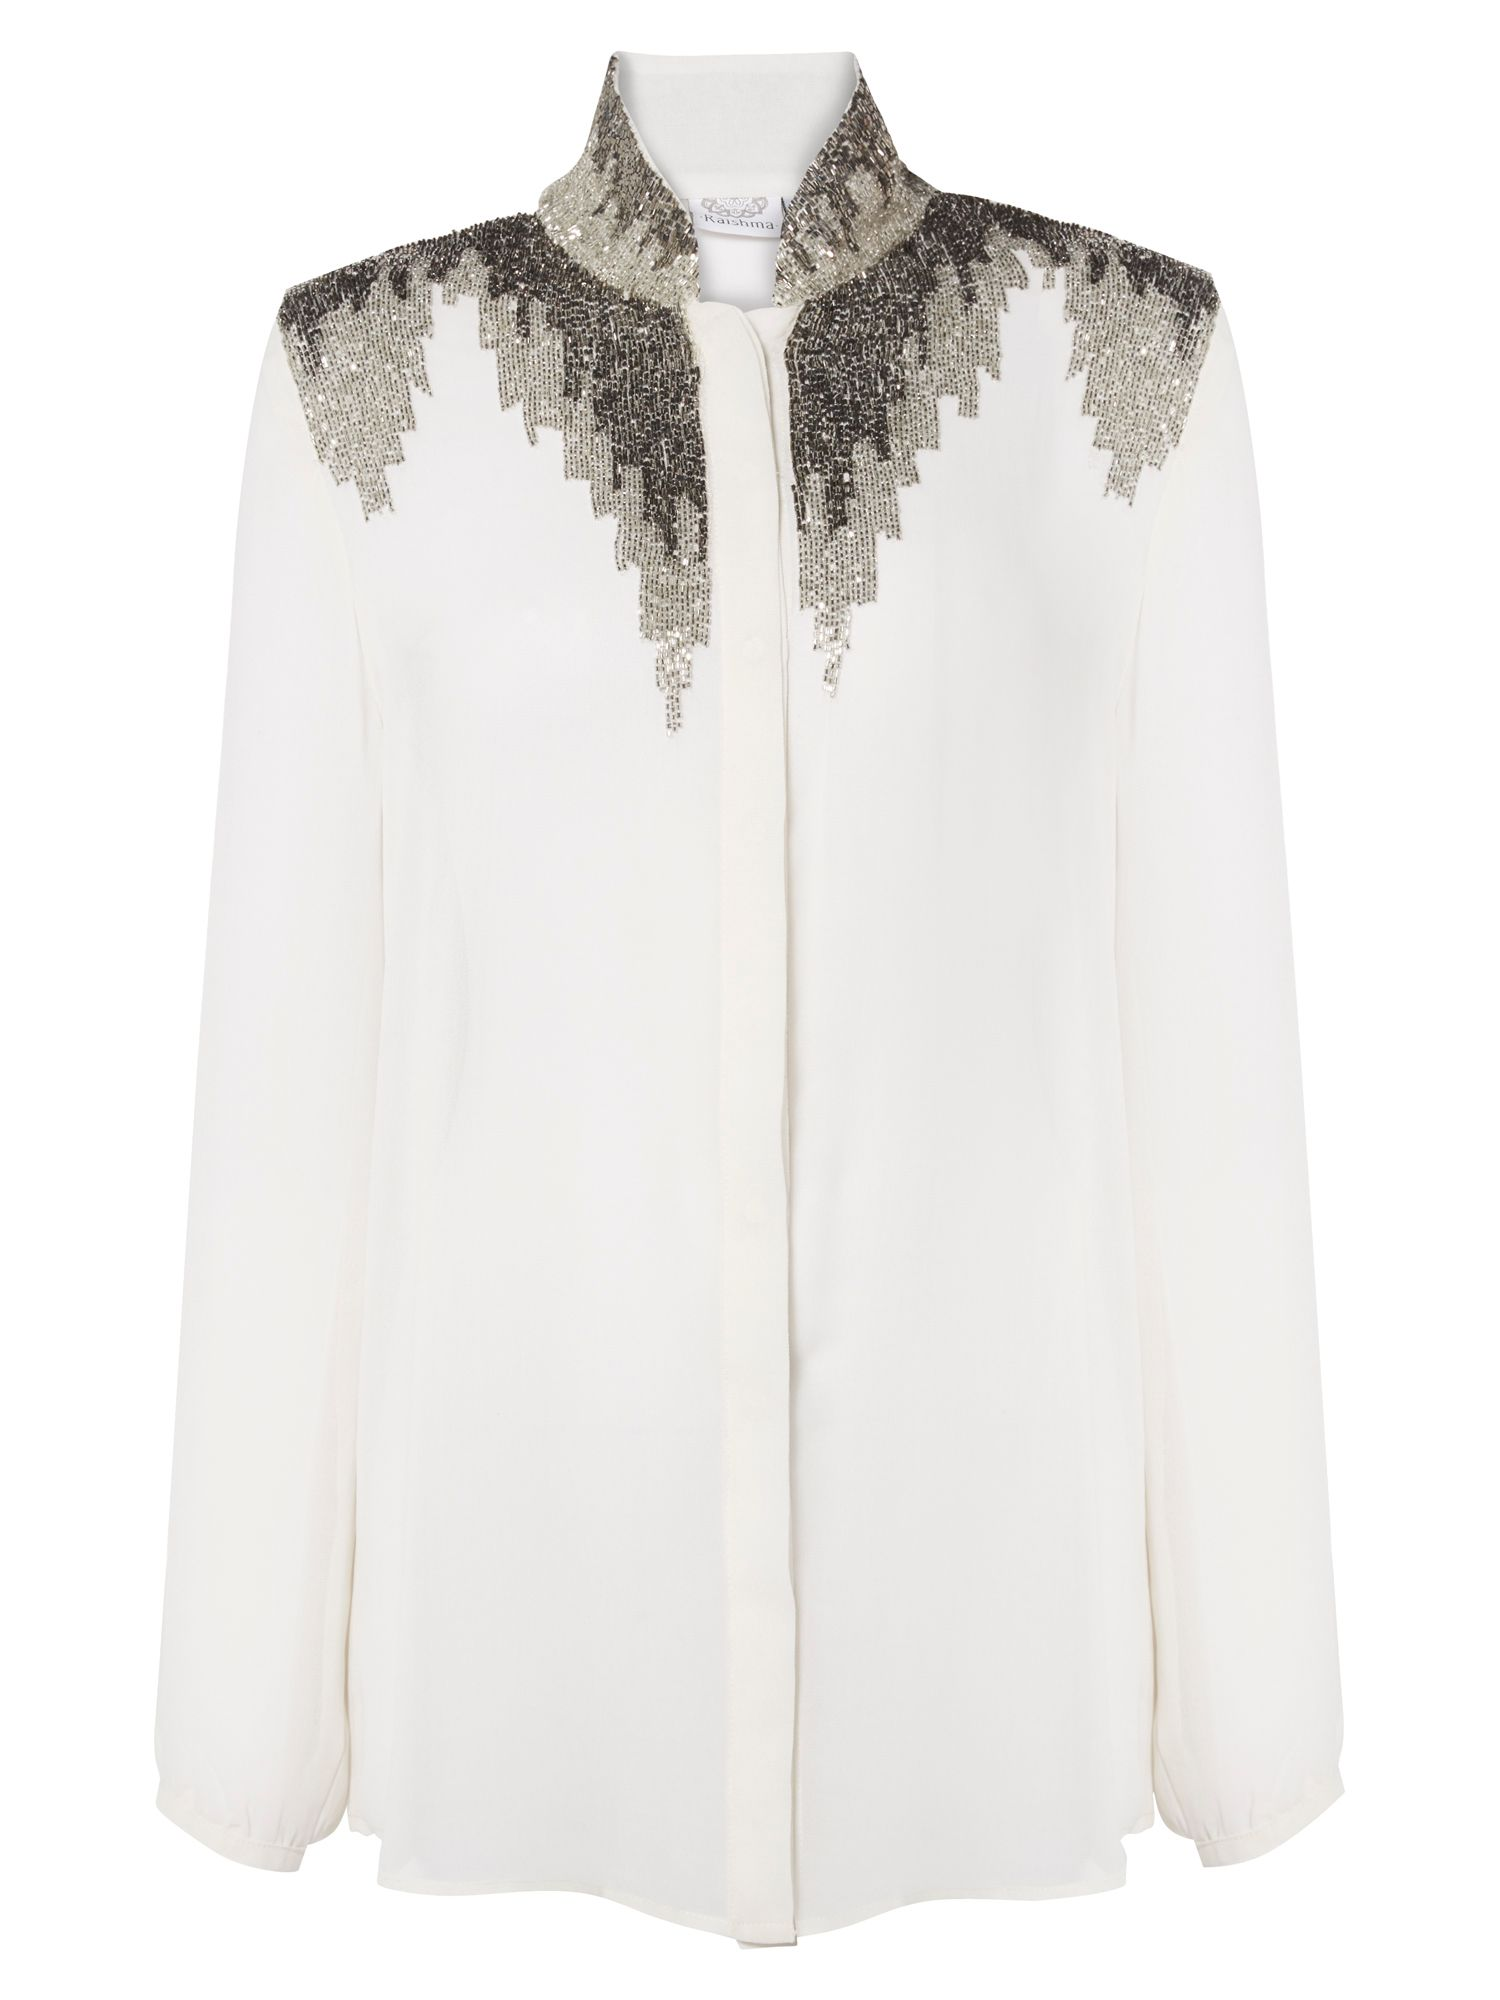 RAISHMA Embellished Detailed Shirt, White